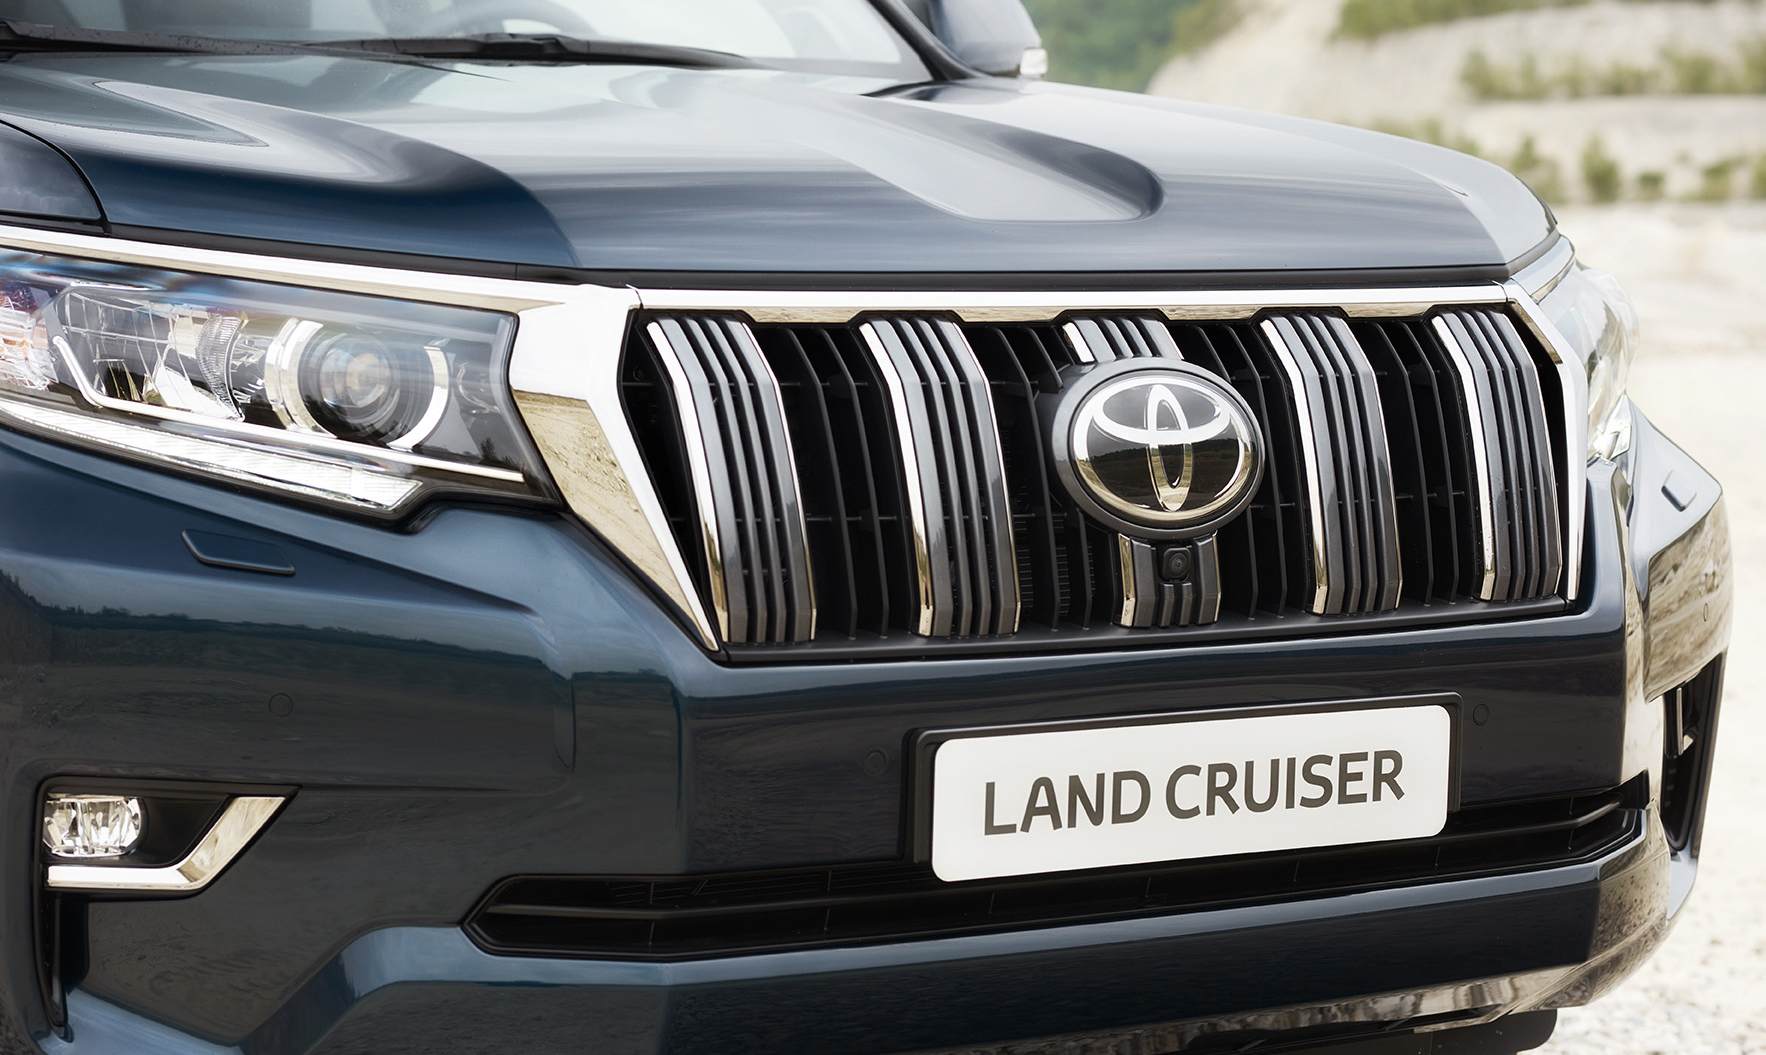 Toyota Reveals New Land Cruiser At Frankfurt Motor Show Engine In Keeping With Heritage The Grille Itself Features Broad Vertical Bars Slit Shaped Cooling Openings Finished Chrome